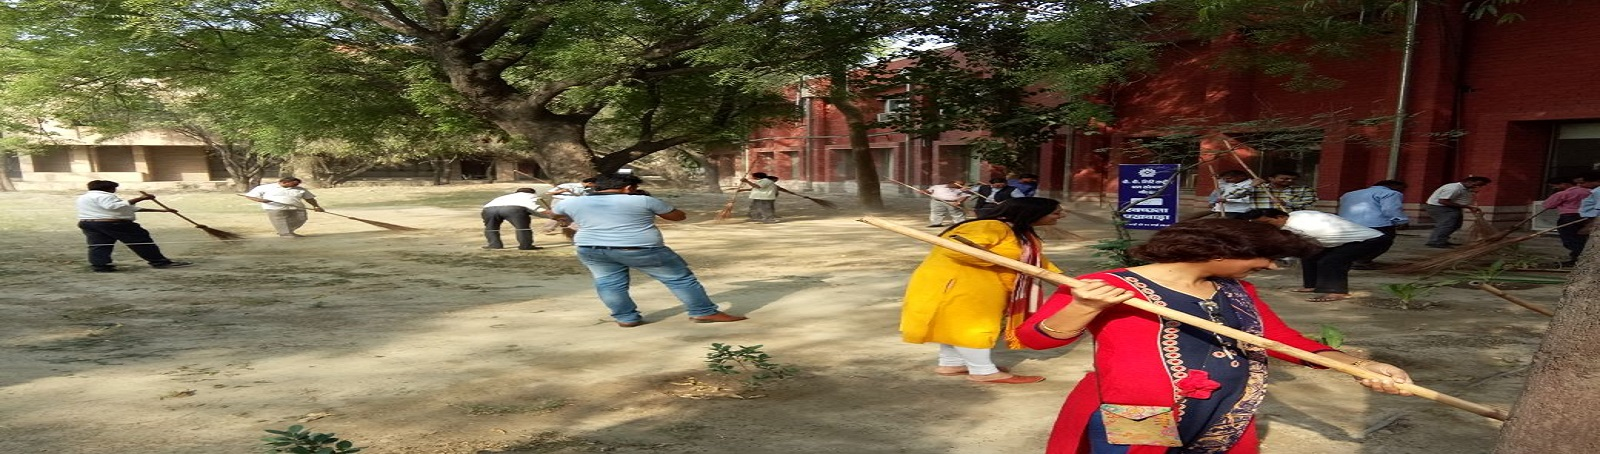 On the occasion of 'SWACHHTA PAKHWADA', all the employees of the VVGNLI institute participated in the cleaning of the Administrative, library, training and residential blocks of the institute during 1st May to 15th May 2018.